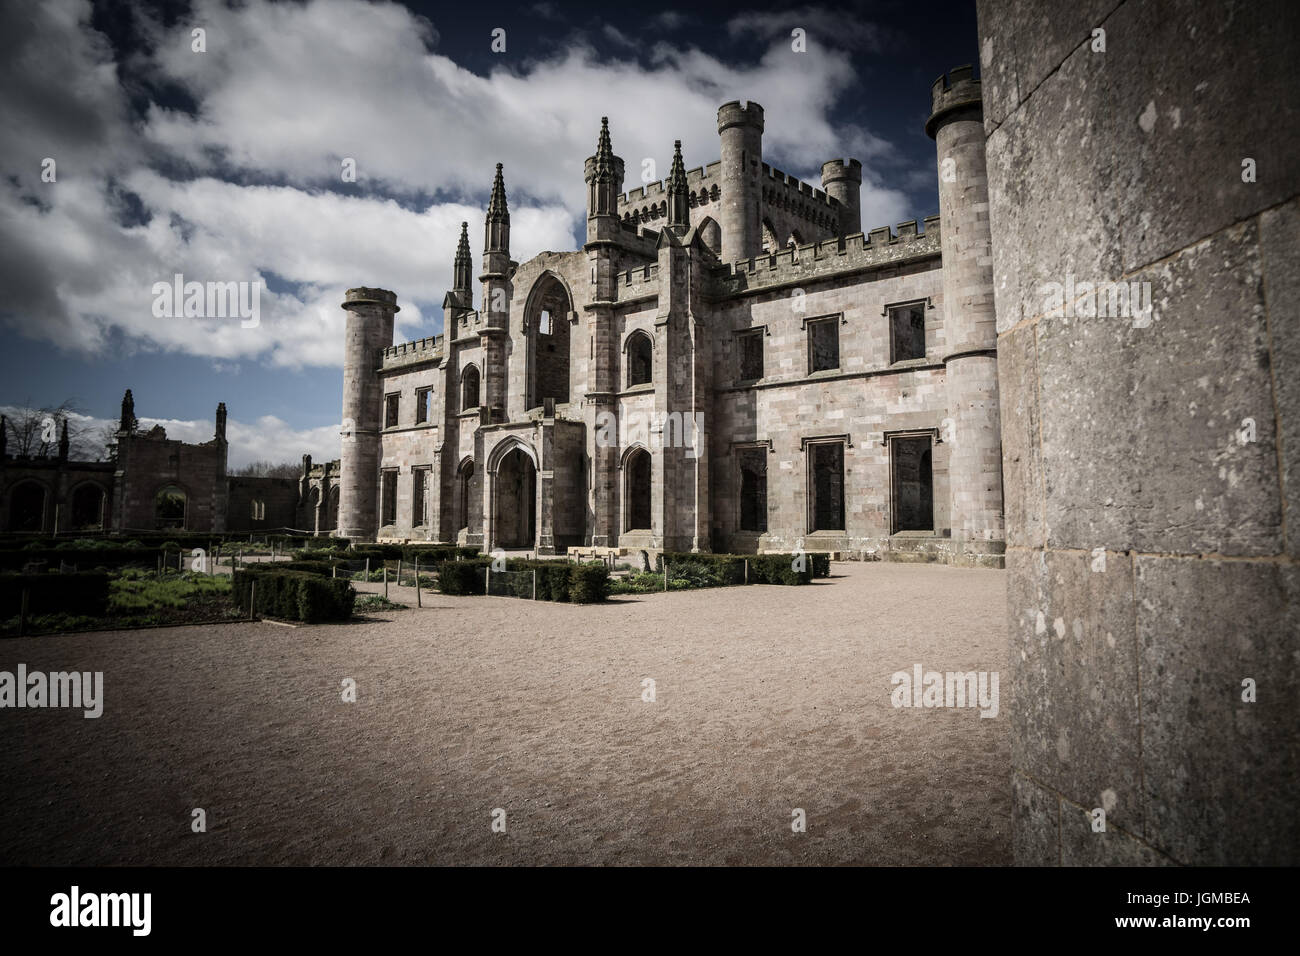 Lowther Castle in Cumbria - Stock Image